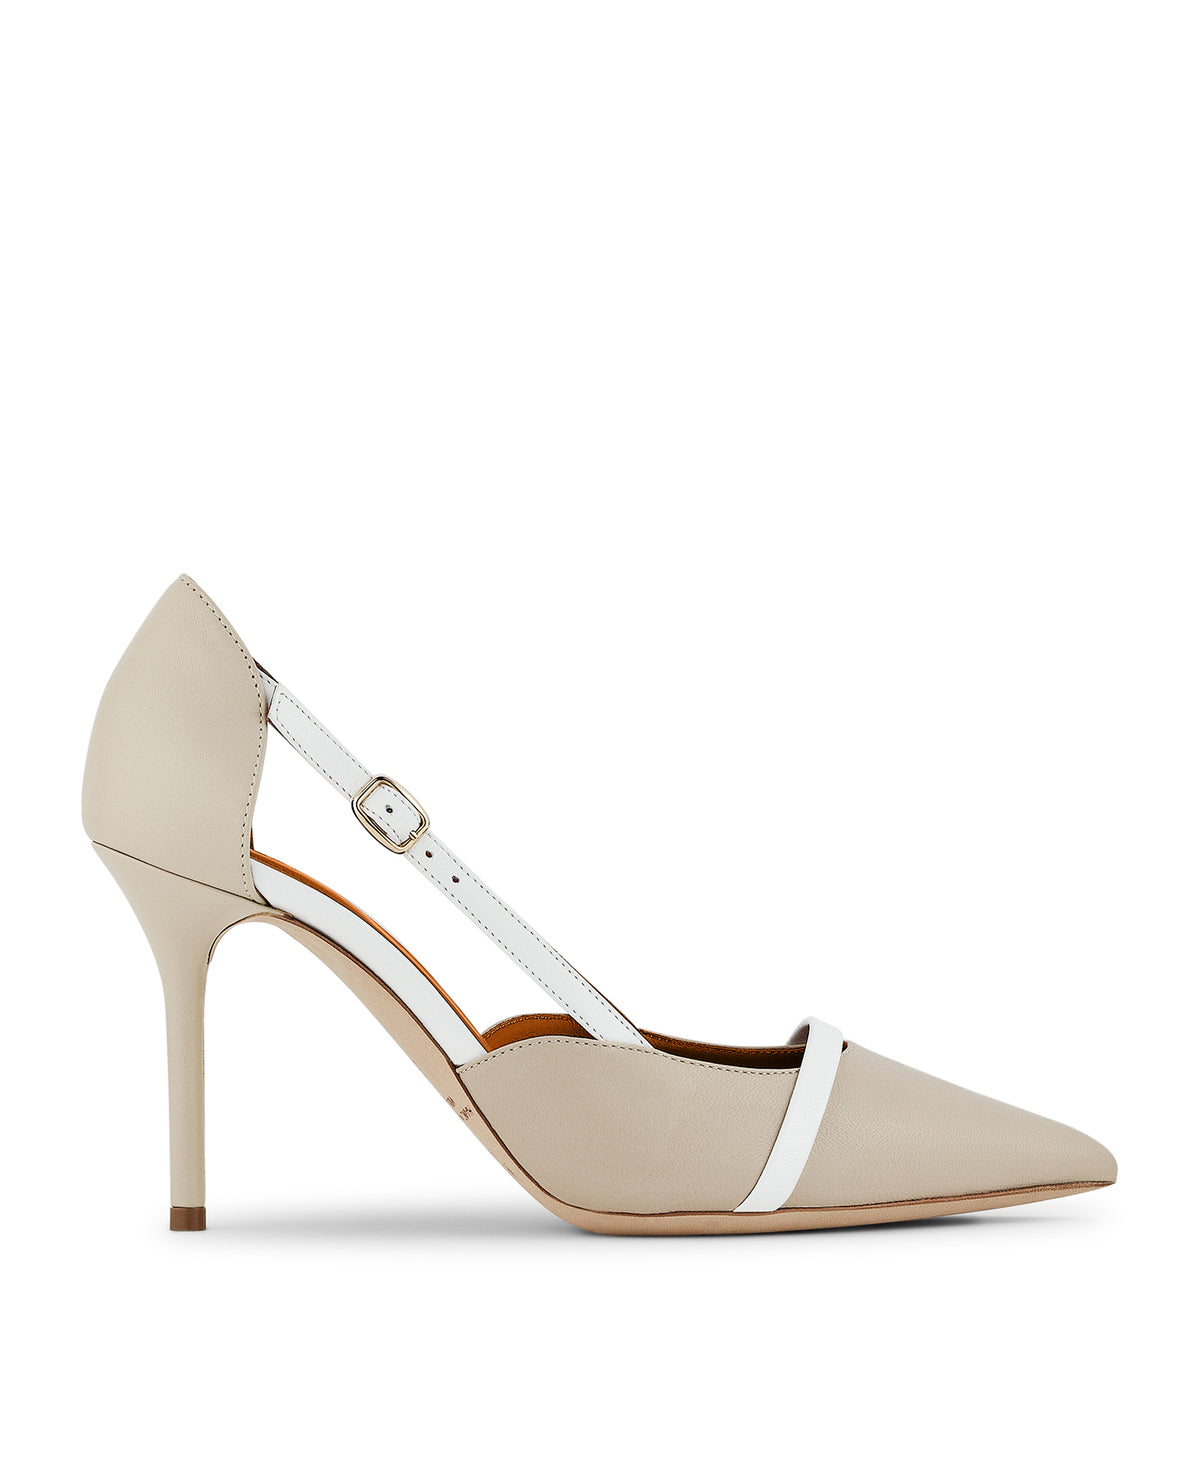 Women's White Leather Pumps With Stiletto Heel Malone Souliers